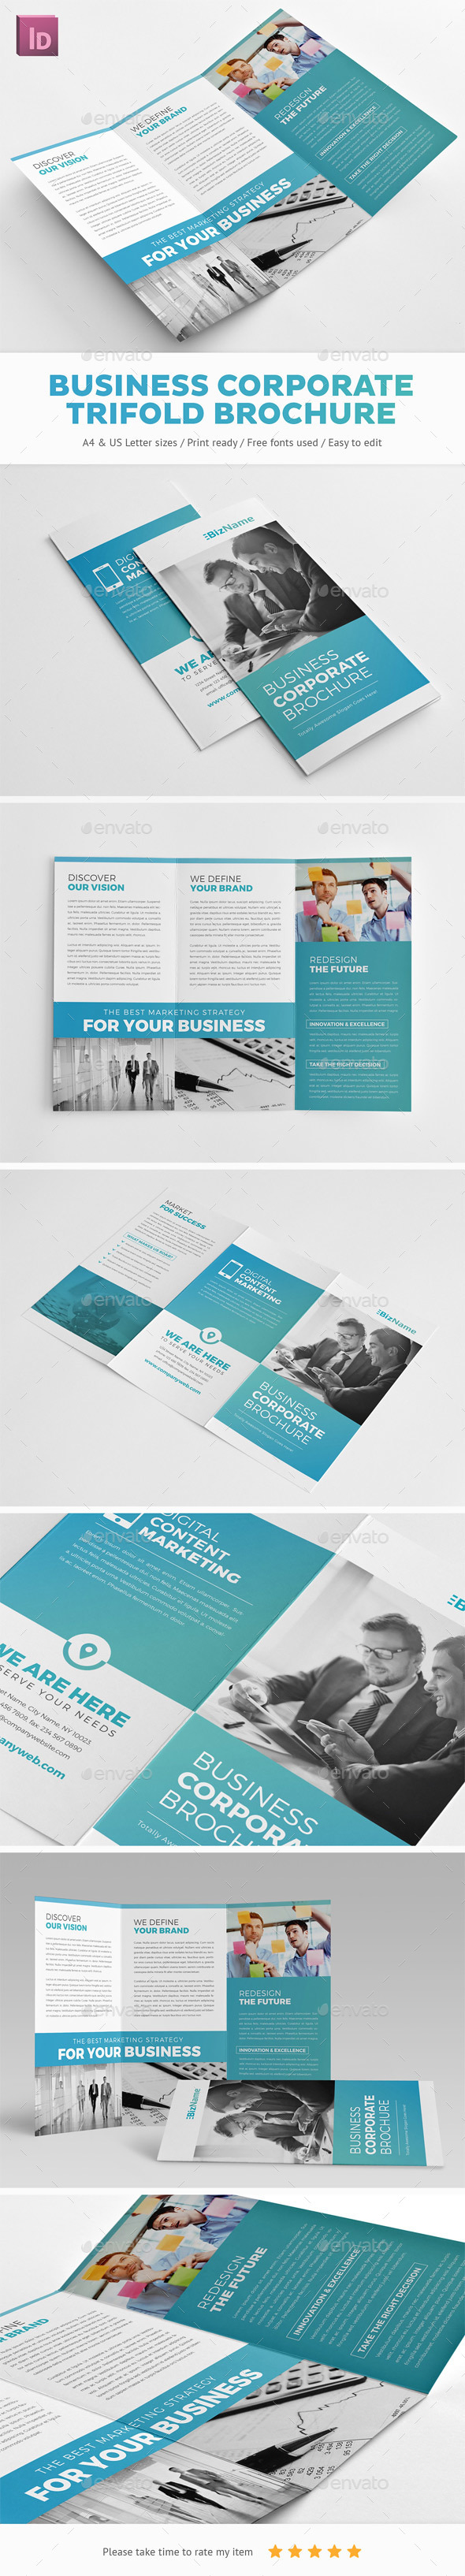 Business Corporate Trifold Brochure - Corporate Brochures